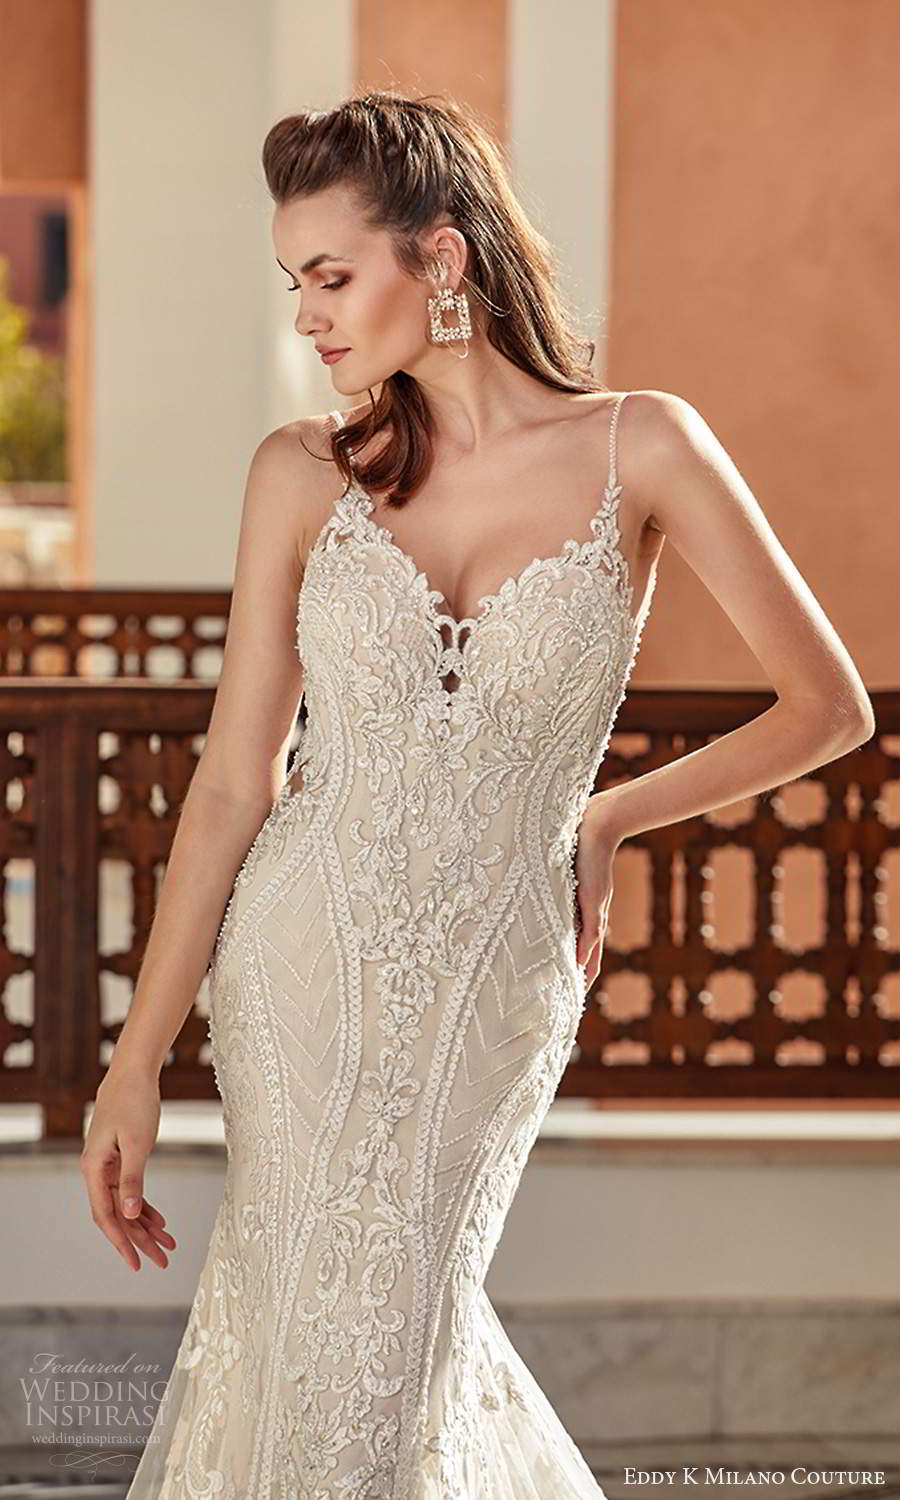 eddy k 2021 milano couture bridal sleeveless thin straps sweetheart neckline fully embellished sheath wedding dress chapel train (8) zv